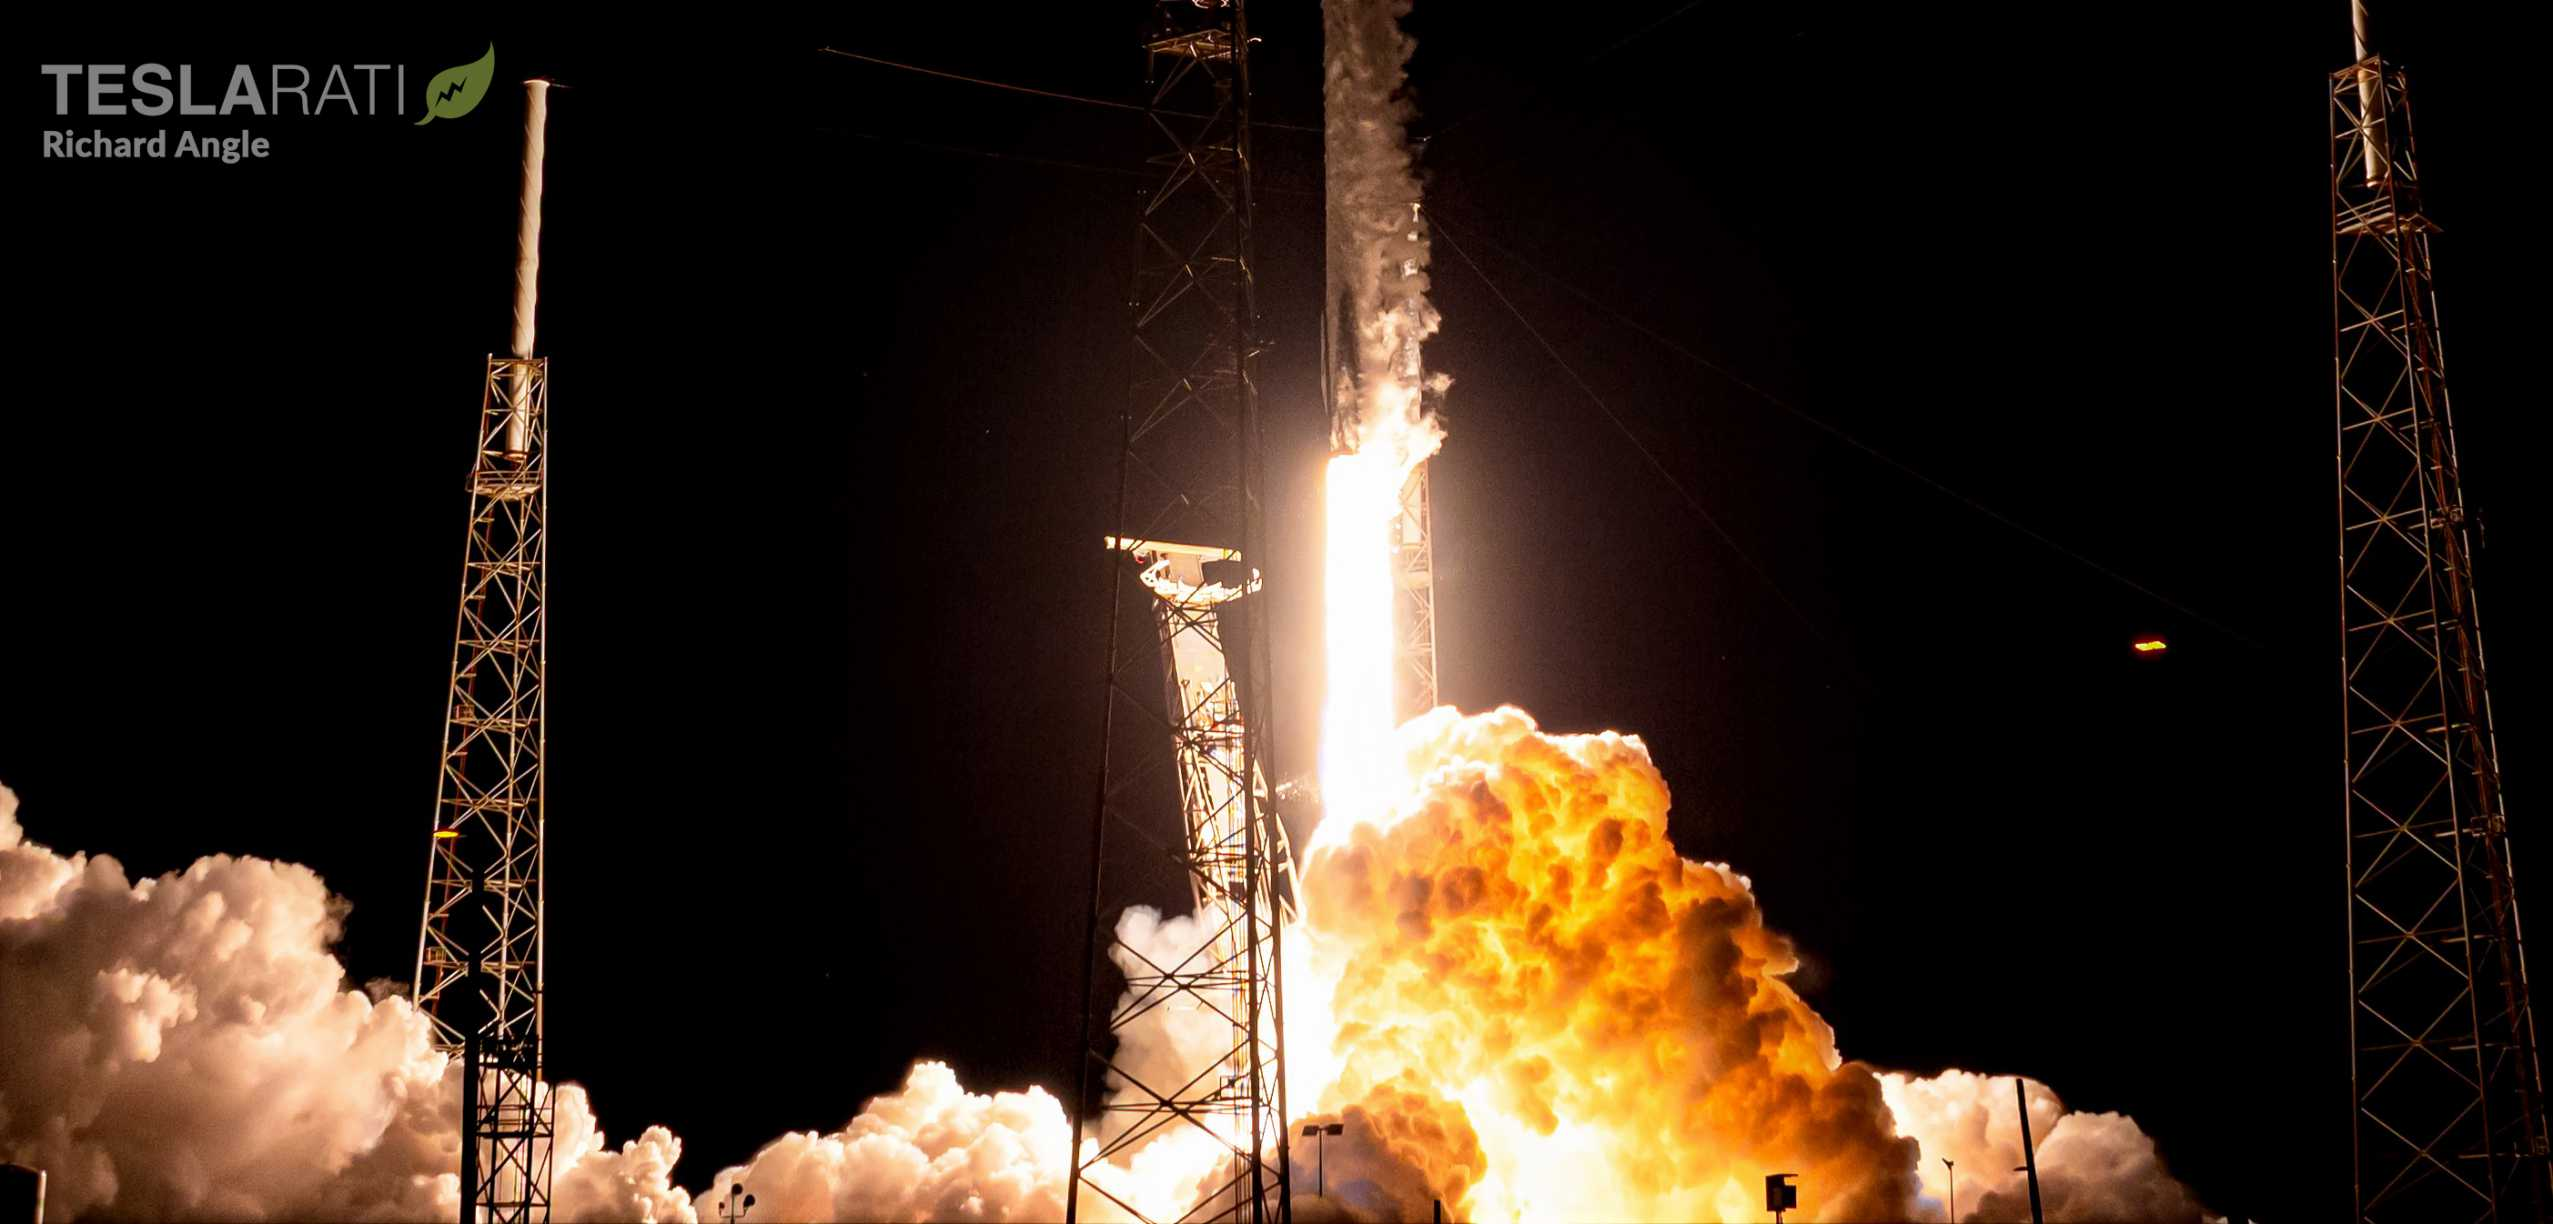 Starlink V1 L8 Falcon 9 B1059 LC40 061320 (Richard Angle) launch 1 crop (c)